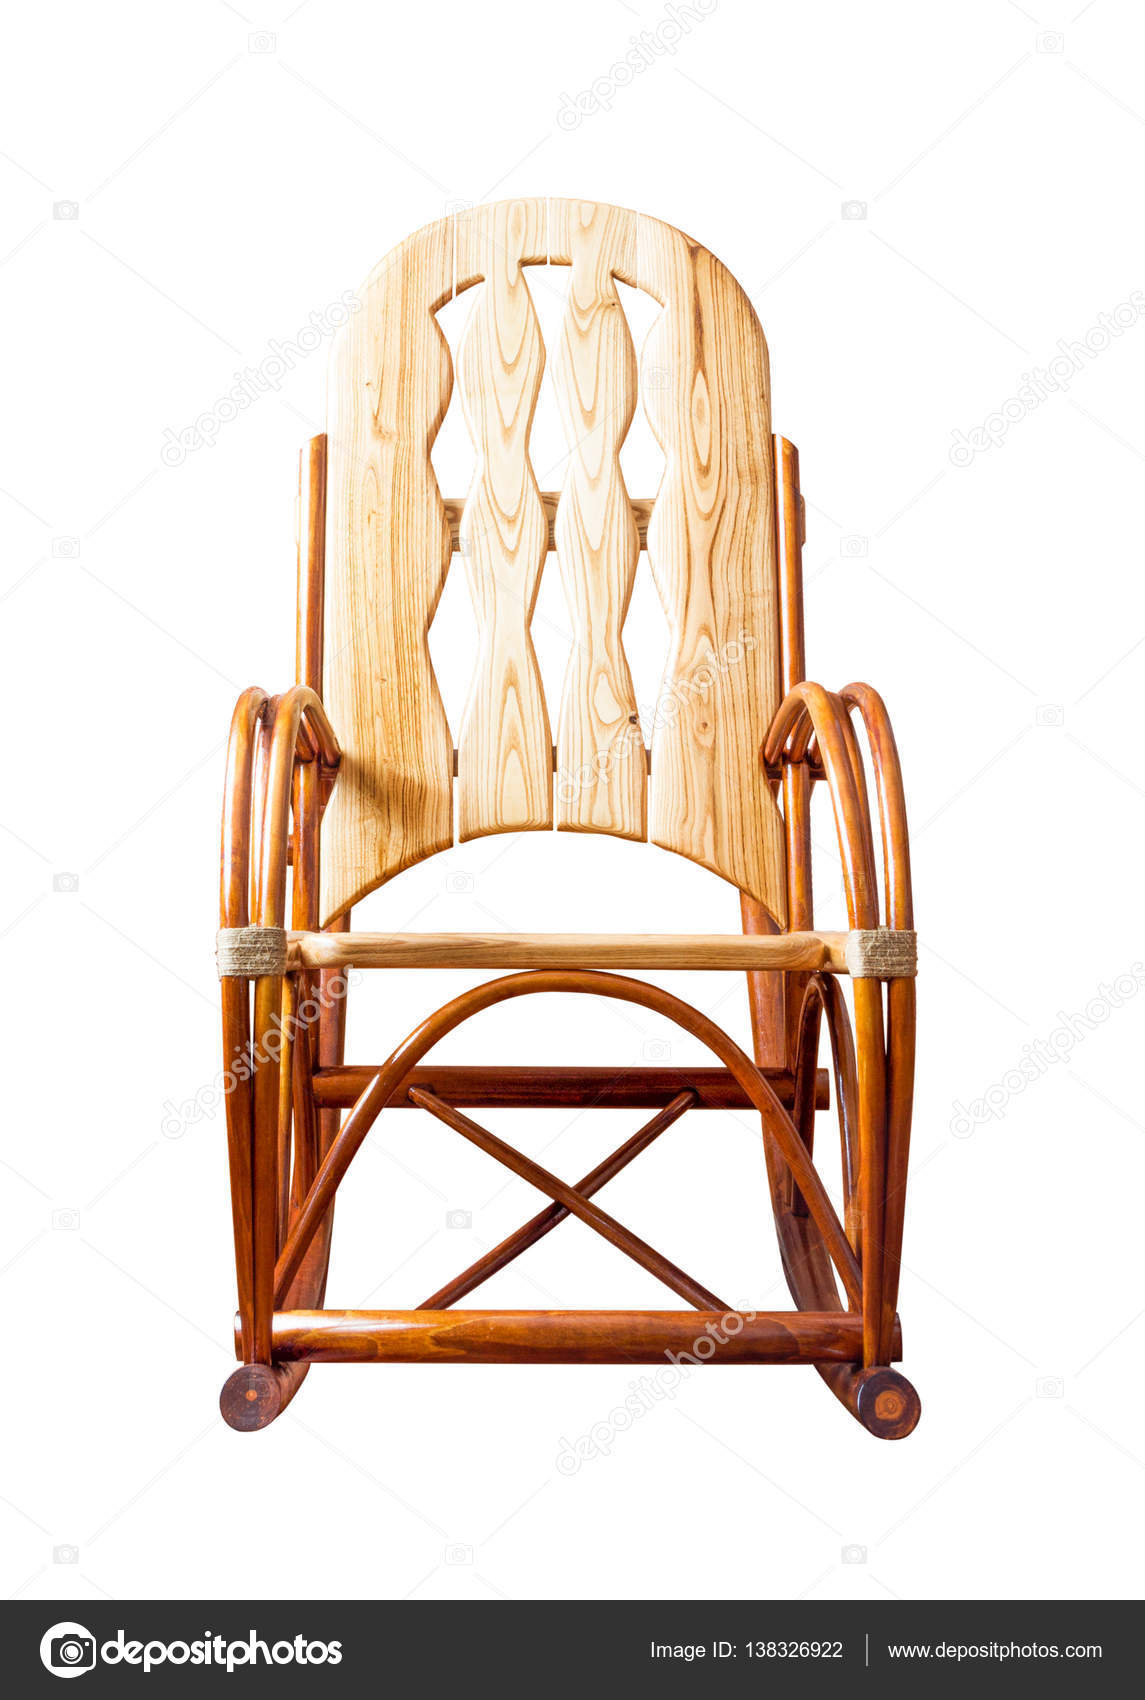 wood design antique identification designs value furniture sale at ideas chairs picture childrens rocking ebay wooden featurepics stock uk c prices for old chair